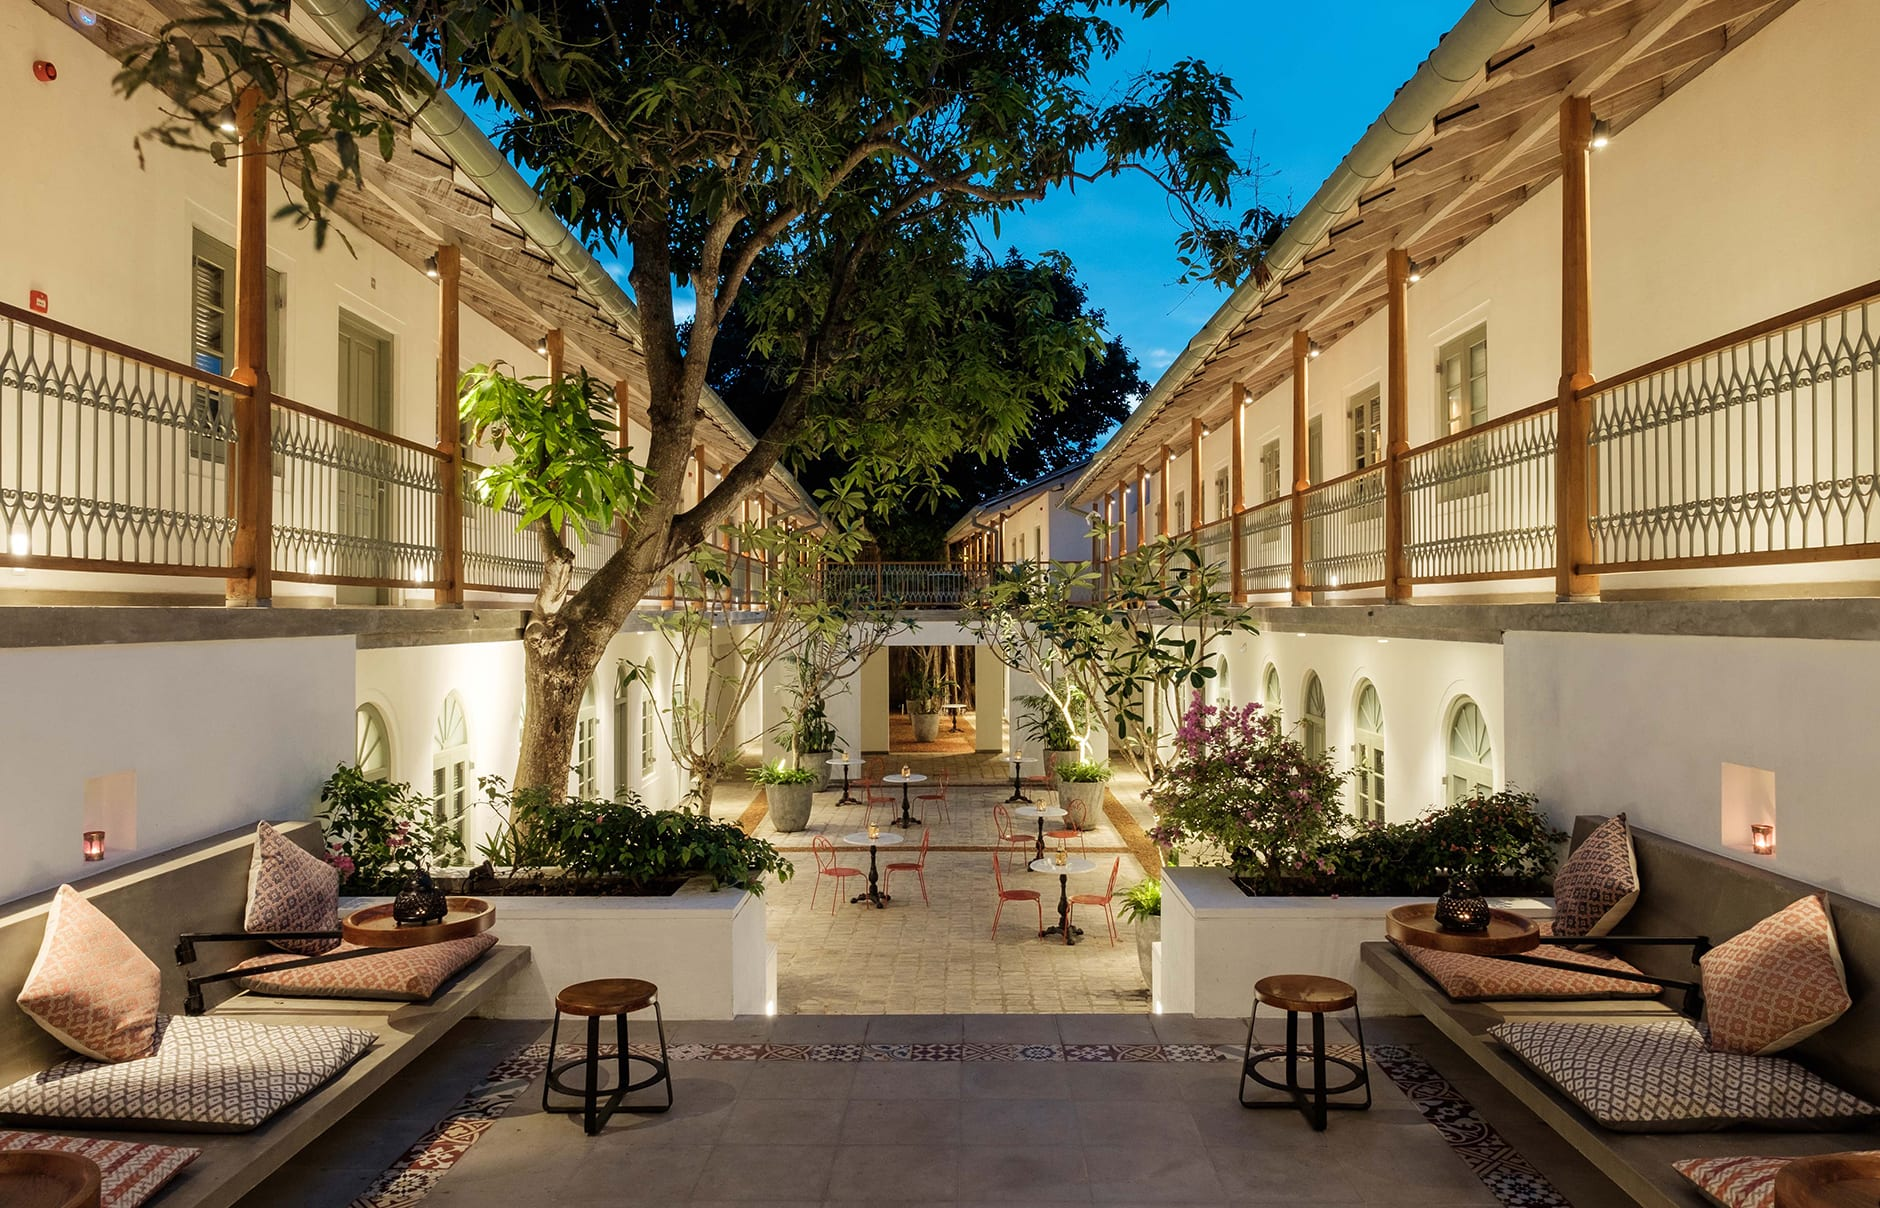 Fort Bazaar Galle, Sri Lanka. Hotel Review by TravelPlusStyle. Photo © Teardrop Hotels